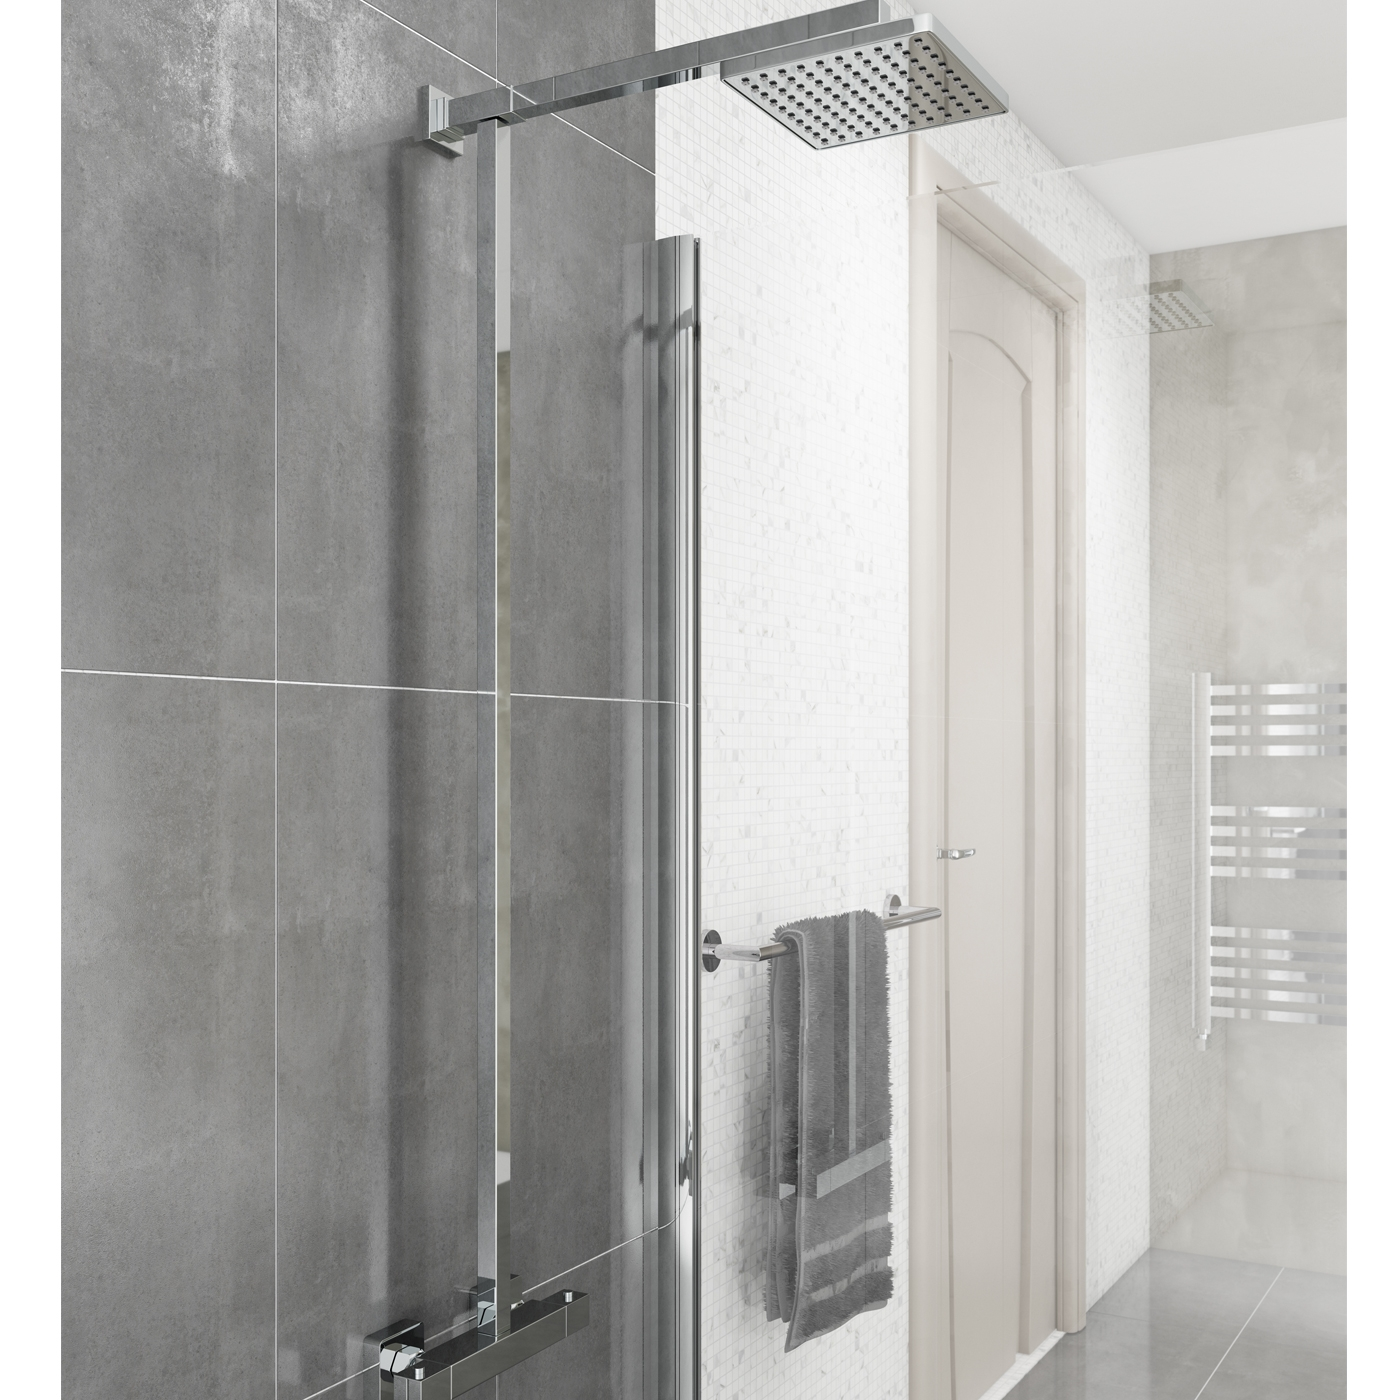 Cali Term Bar Mixer Shower with Fixed Head